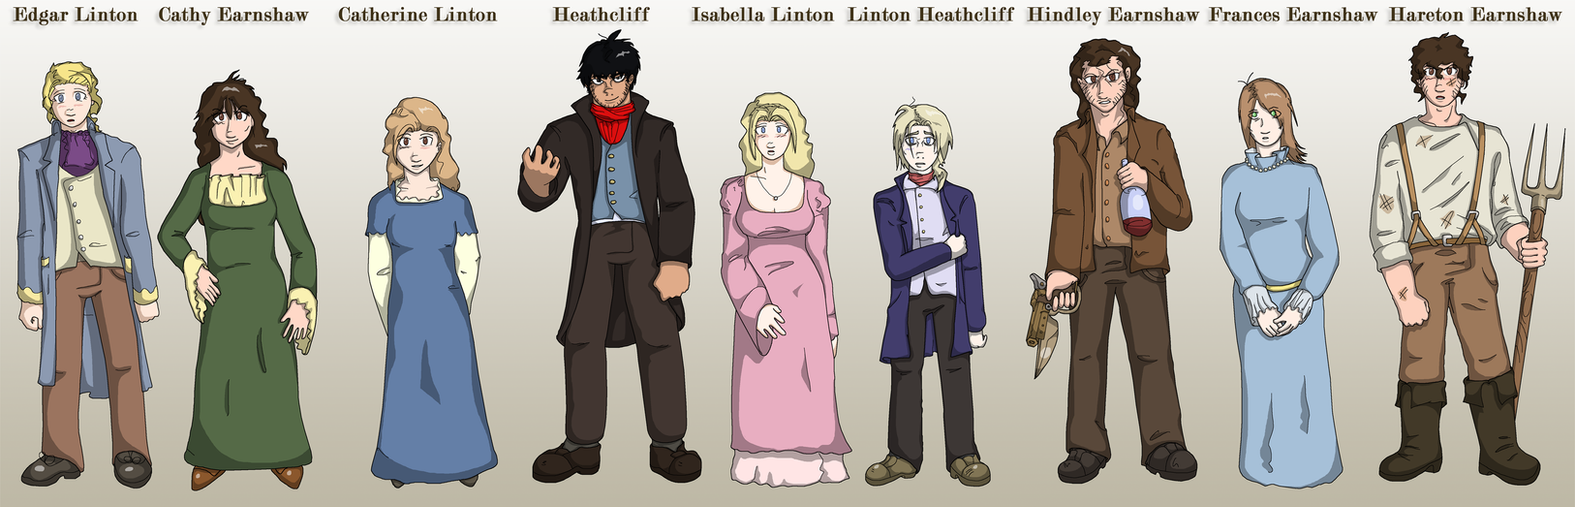 Stylistic Features of Wuthering Heights